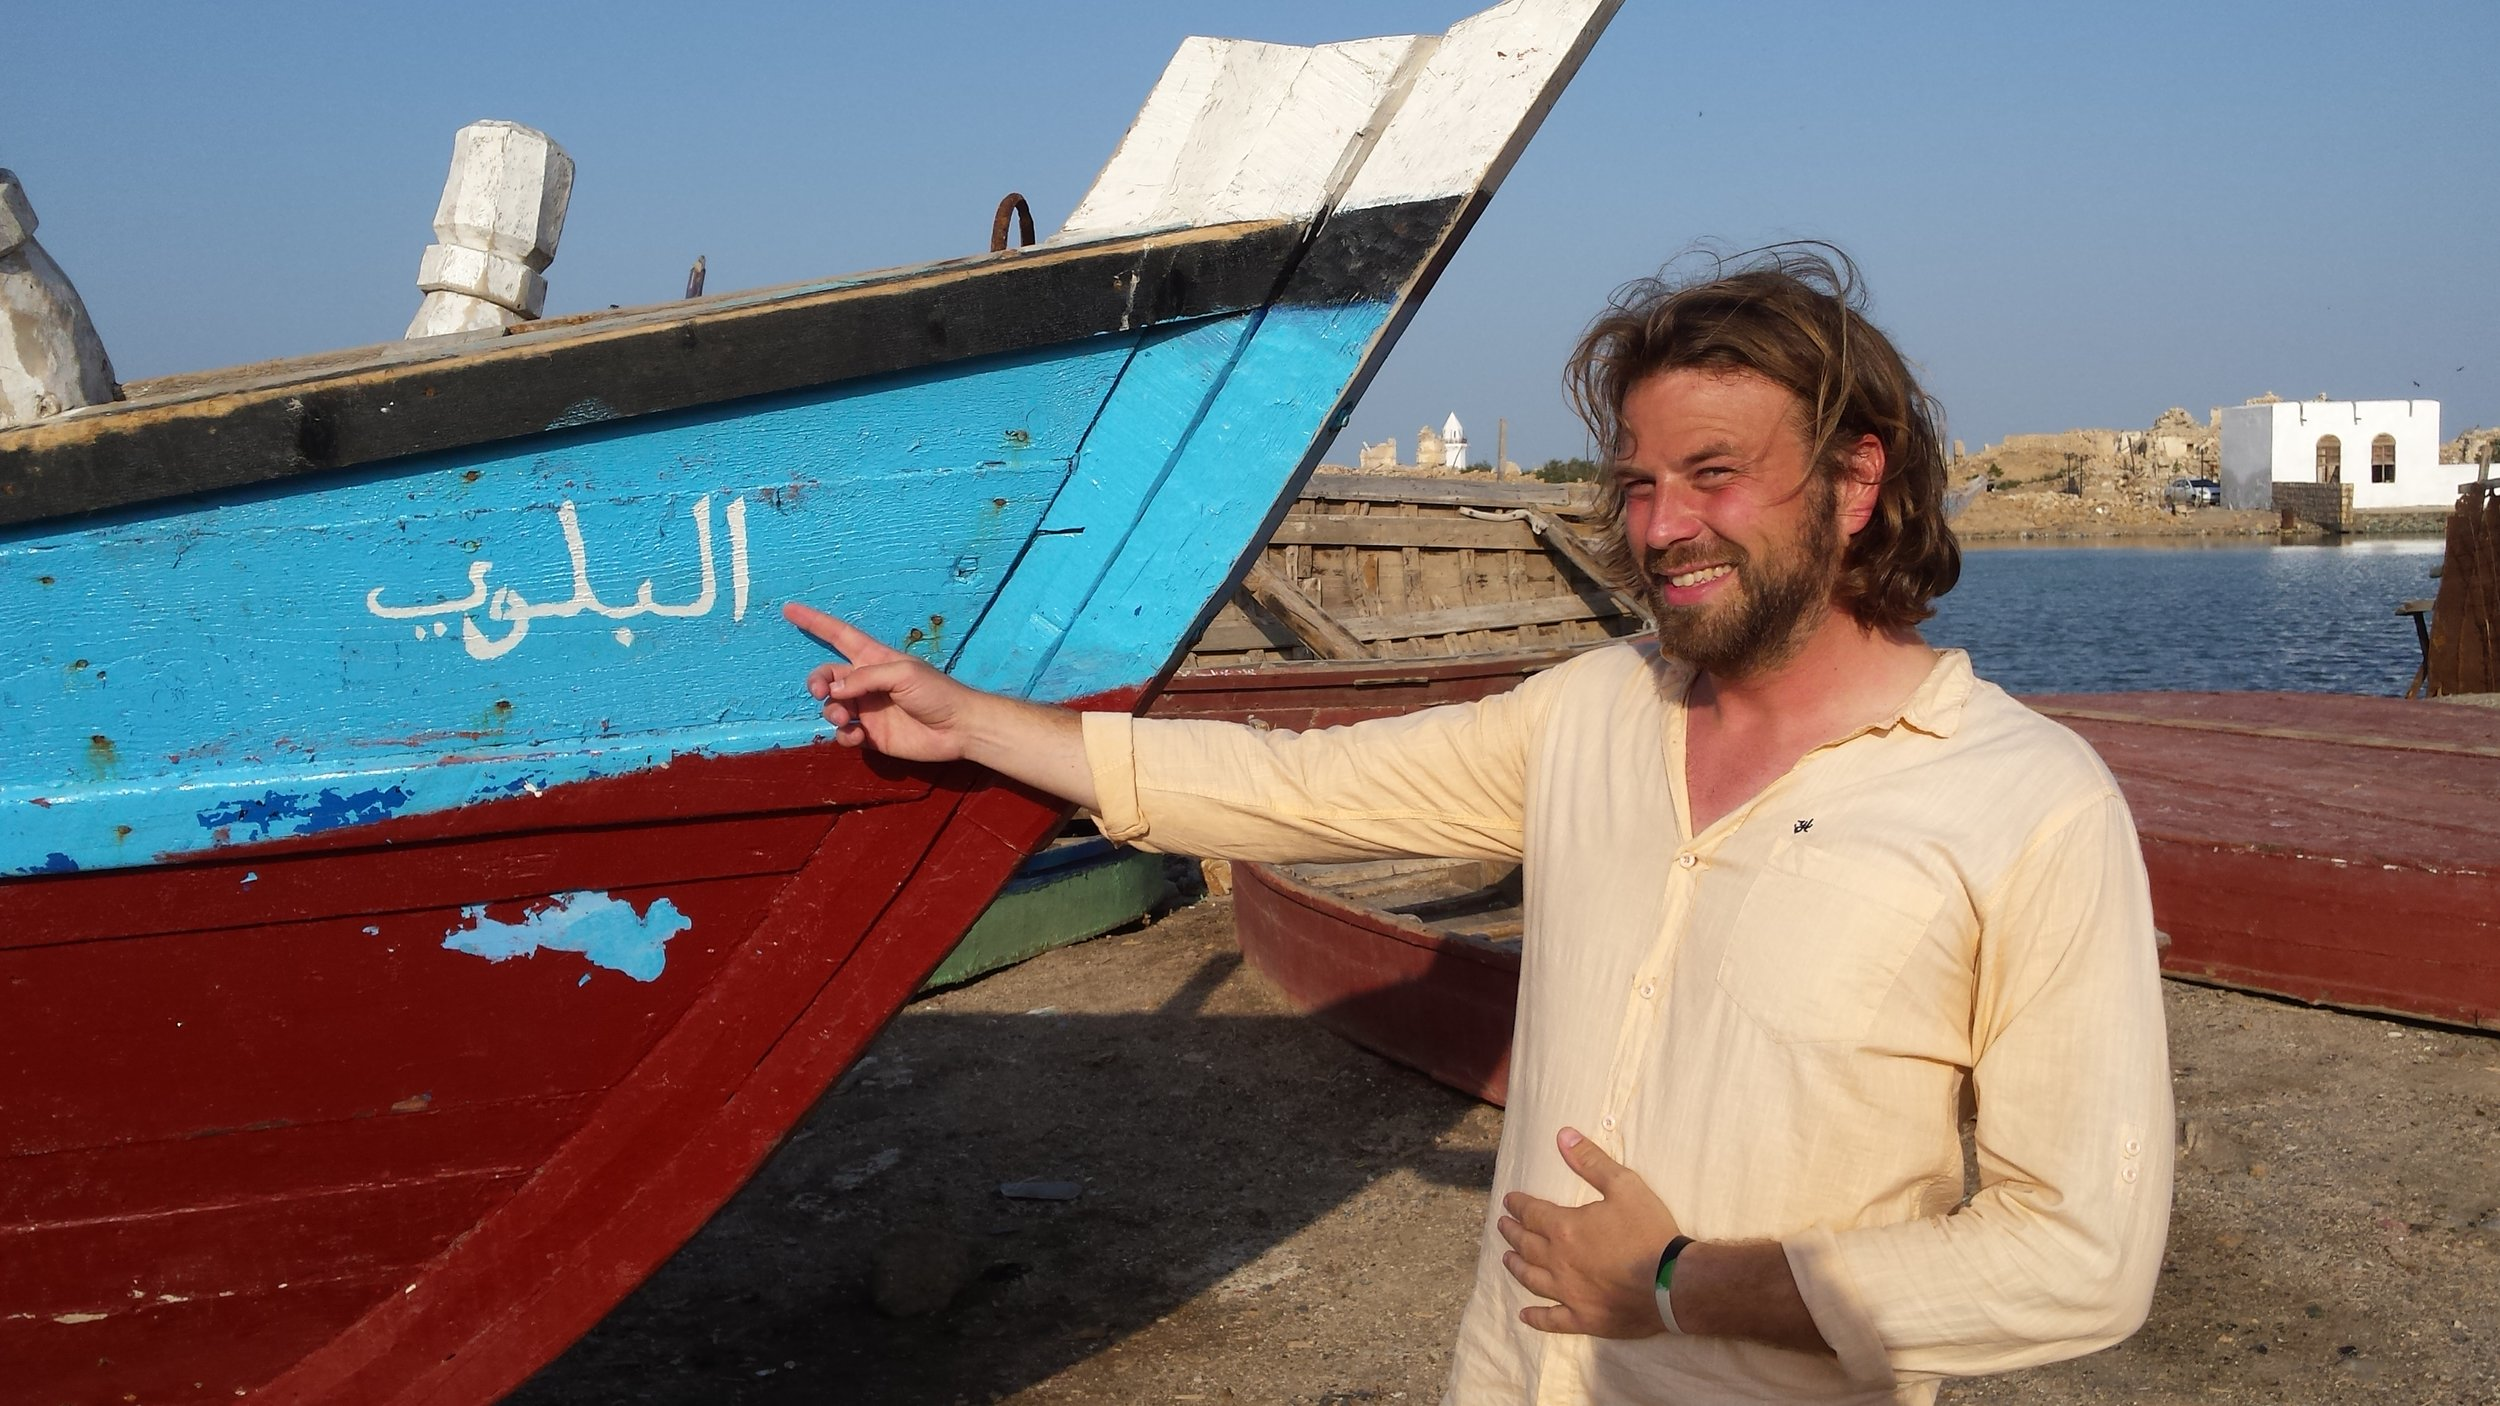 al-balawi — The Disaster. My brother Eric and I named our yellow canoe the same thing.